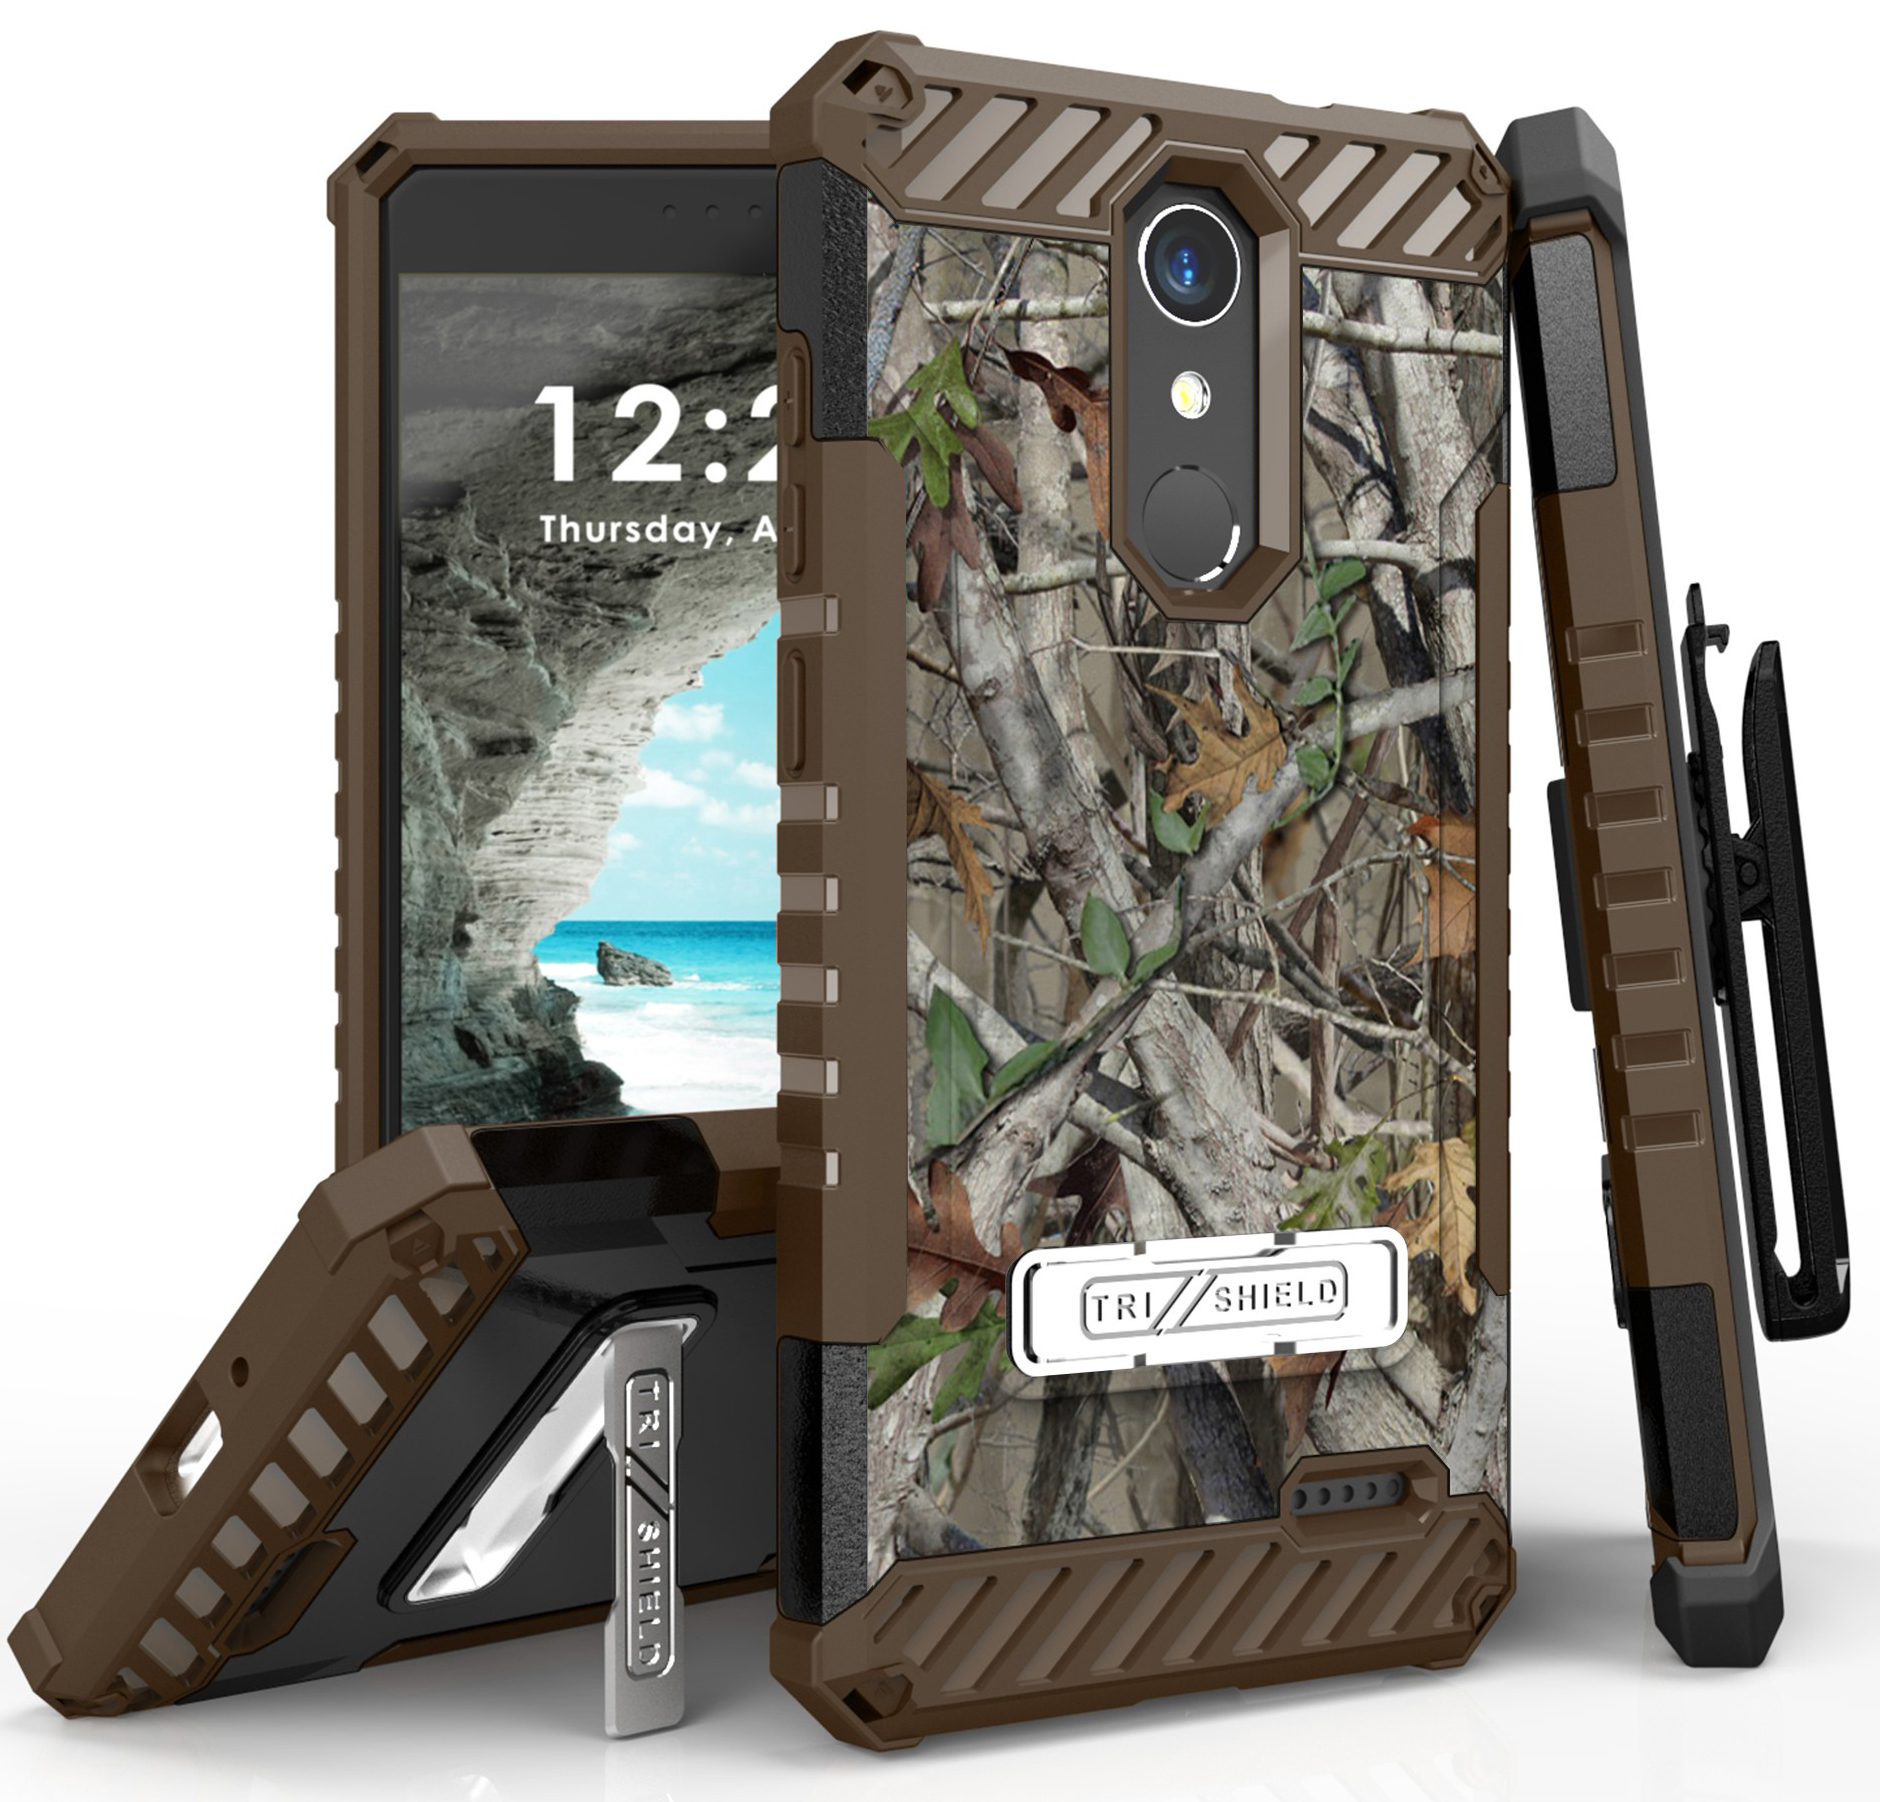 ZTE Grand X4 Case, AUTUMN CAMO LEAF TREE REAL WOODS TRI-SHIELD RUGGED COVER with MAGNETIC KICKSTAND + BELT CLIP HOLSTER + SCREEN PROTECTOR + LANYARD STRAP FOR ZTE GRAND X4 Z956, Blade Spark Z971